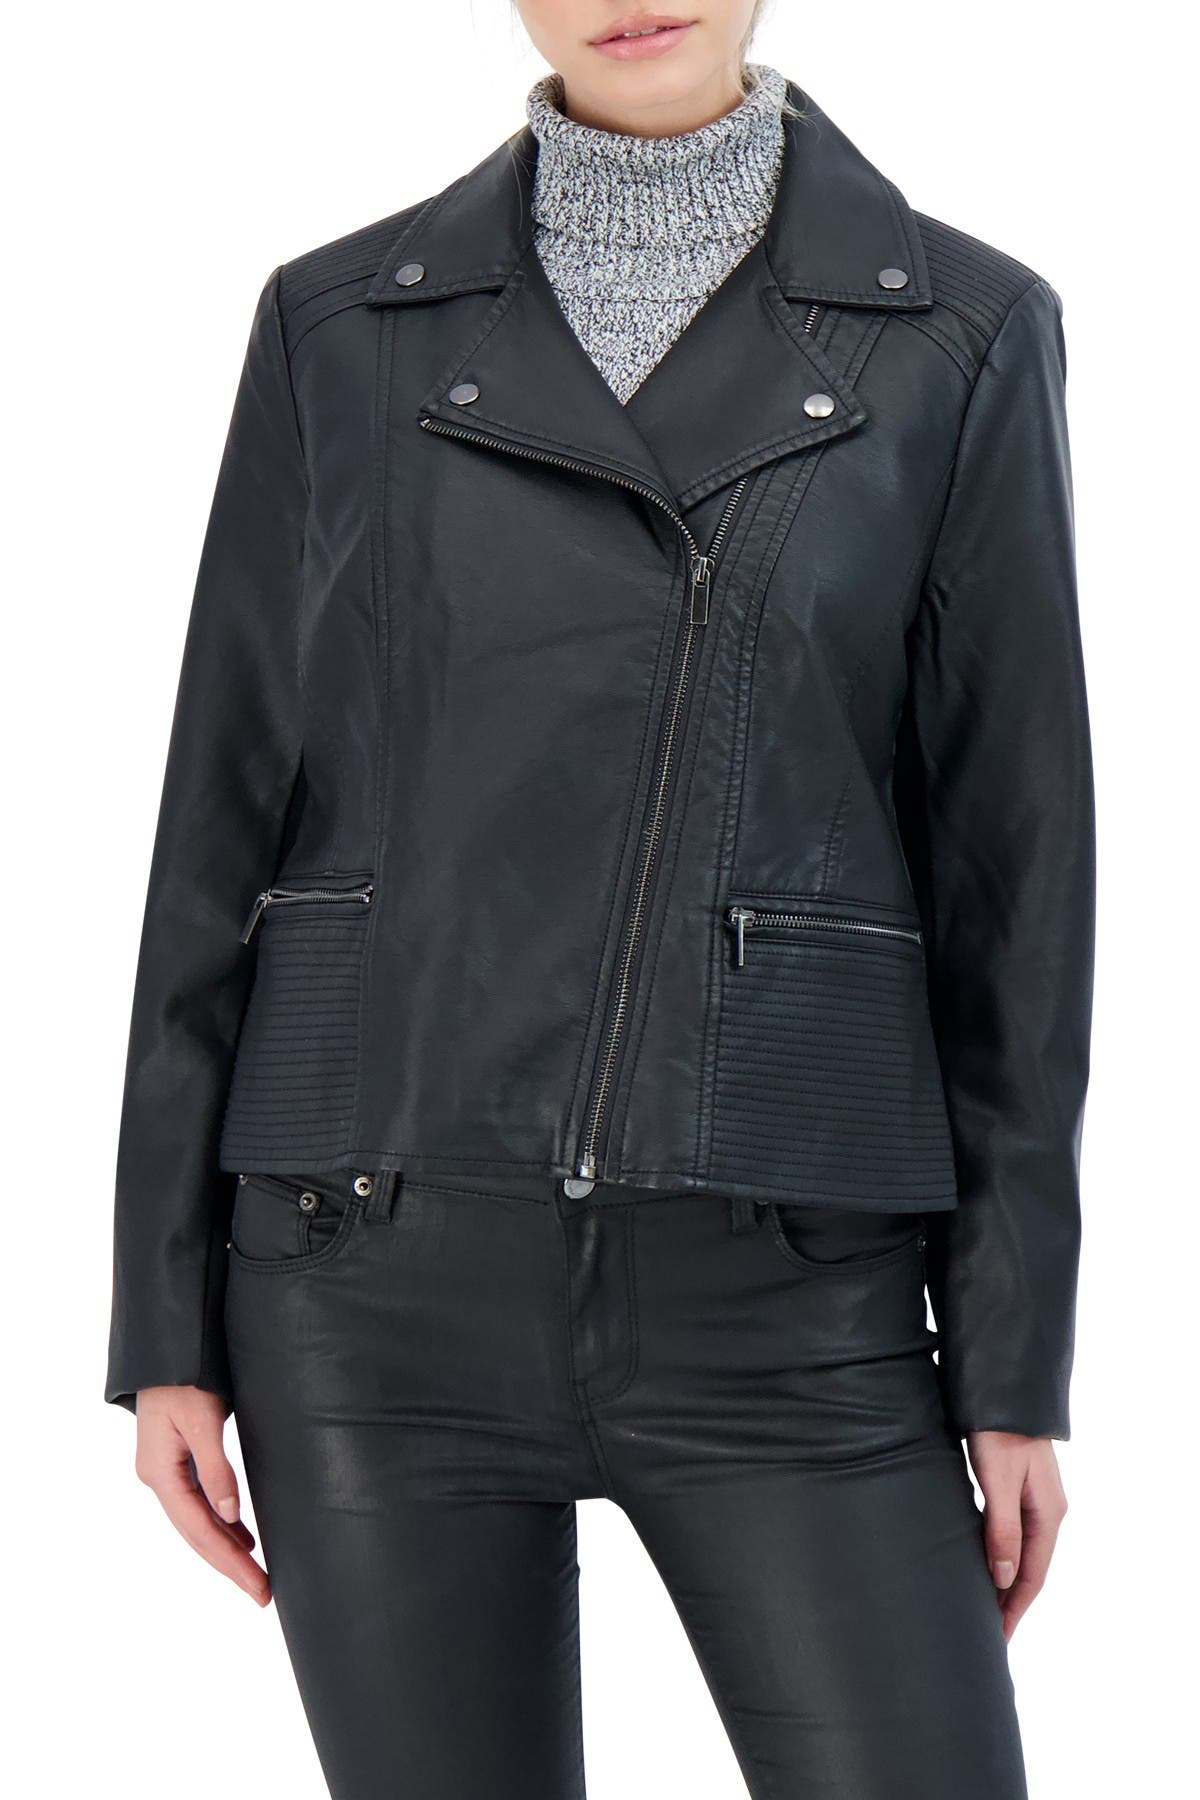 Image of Sebby Collection Faux Leather Biker Jacket